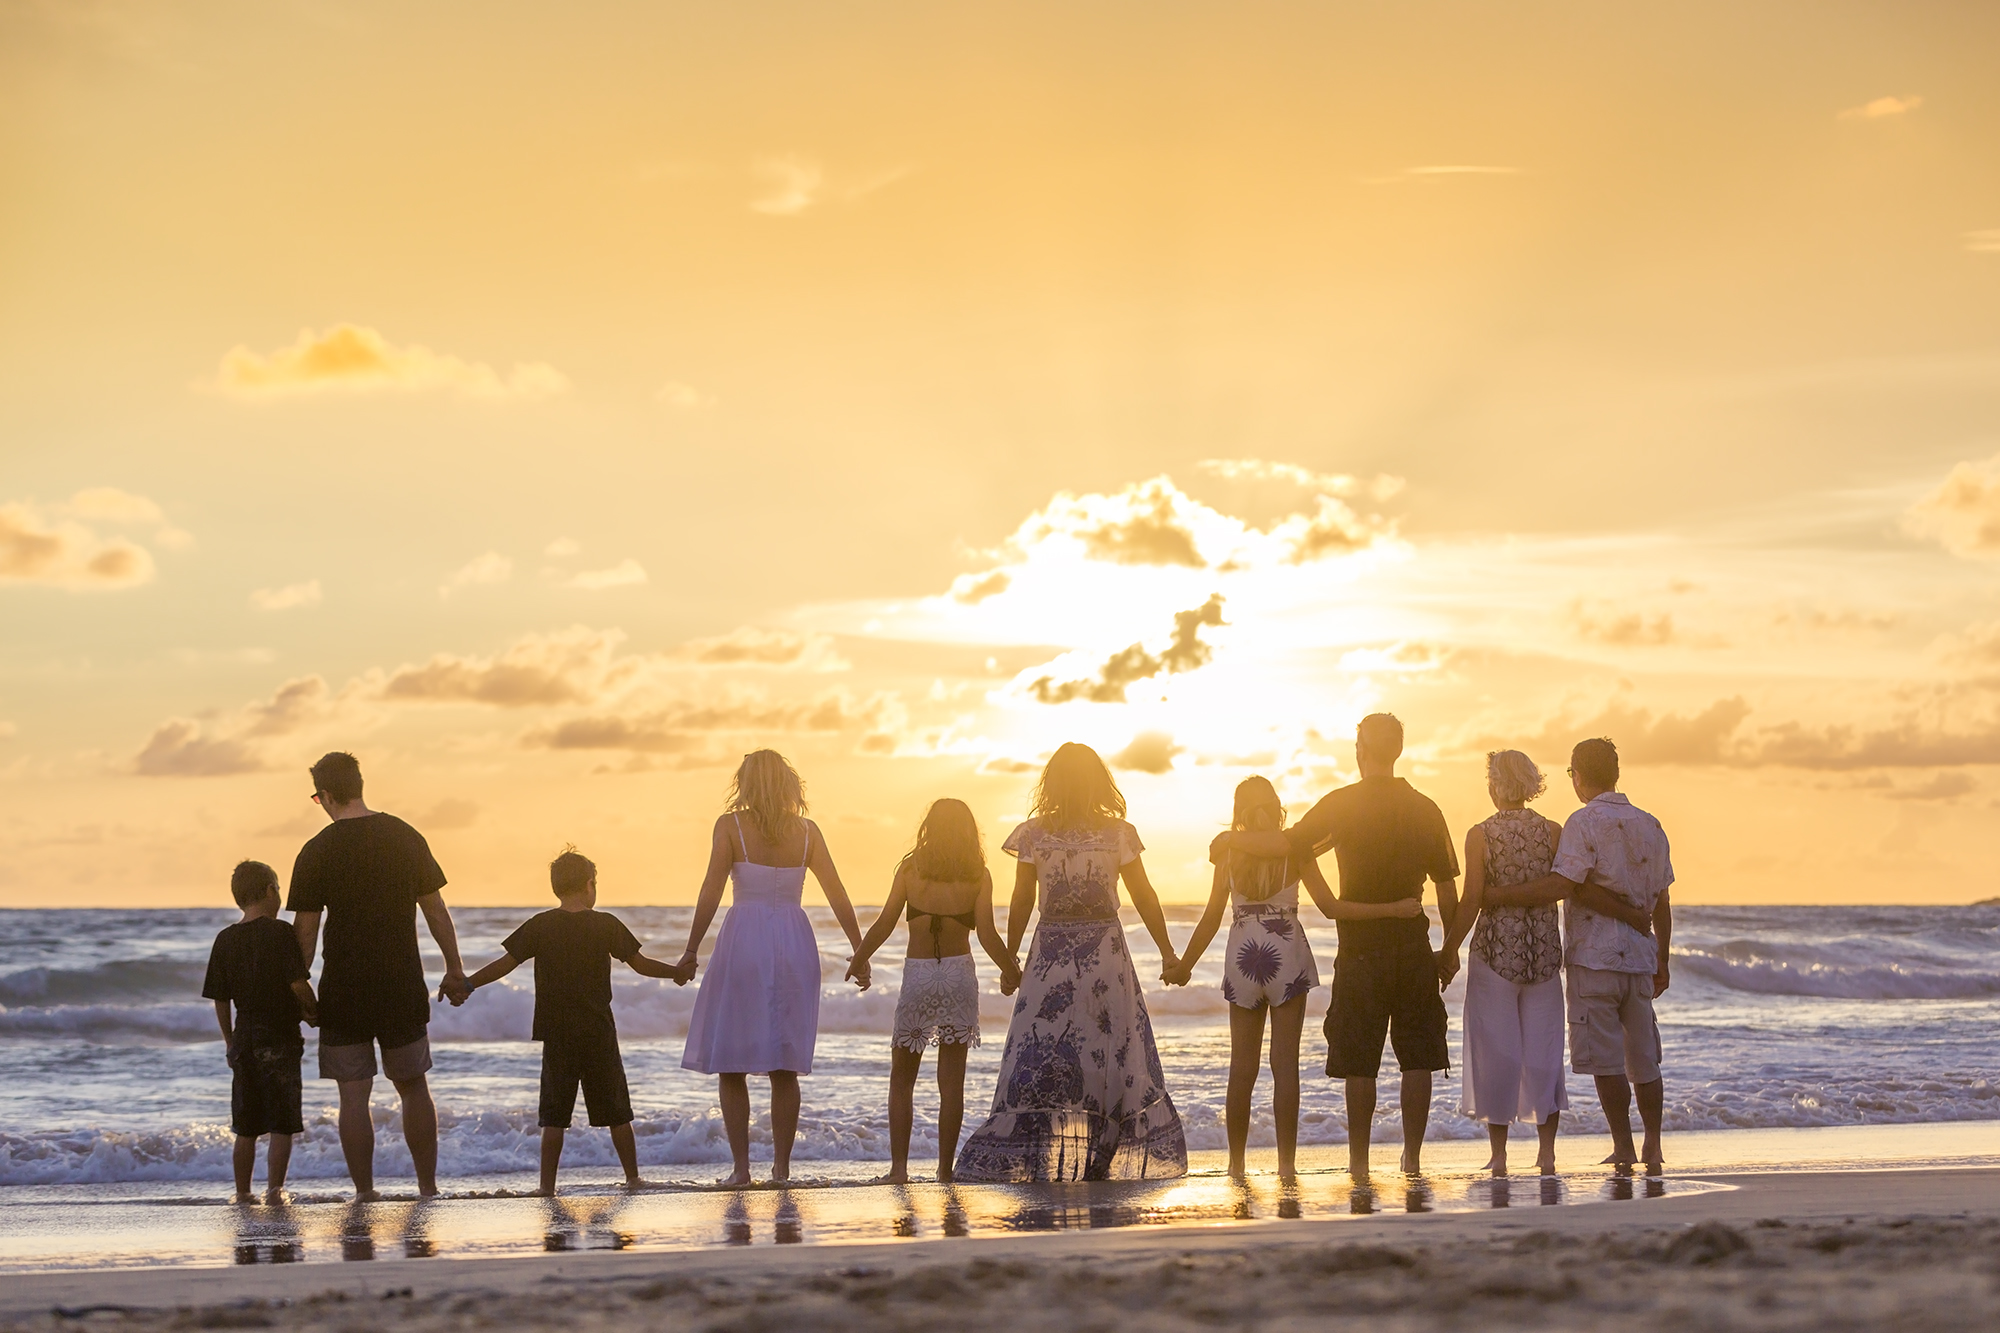 family reunion photo session at karon beach phuket thailand